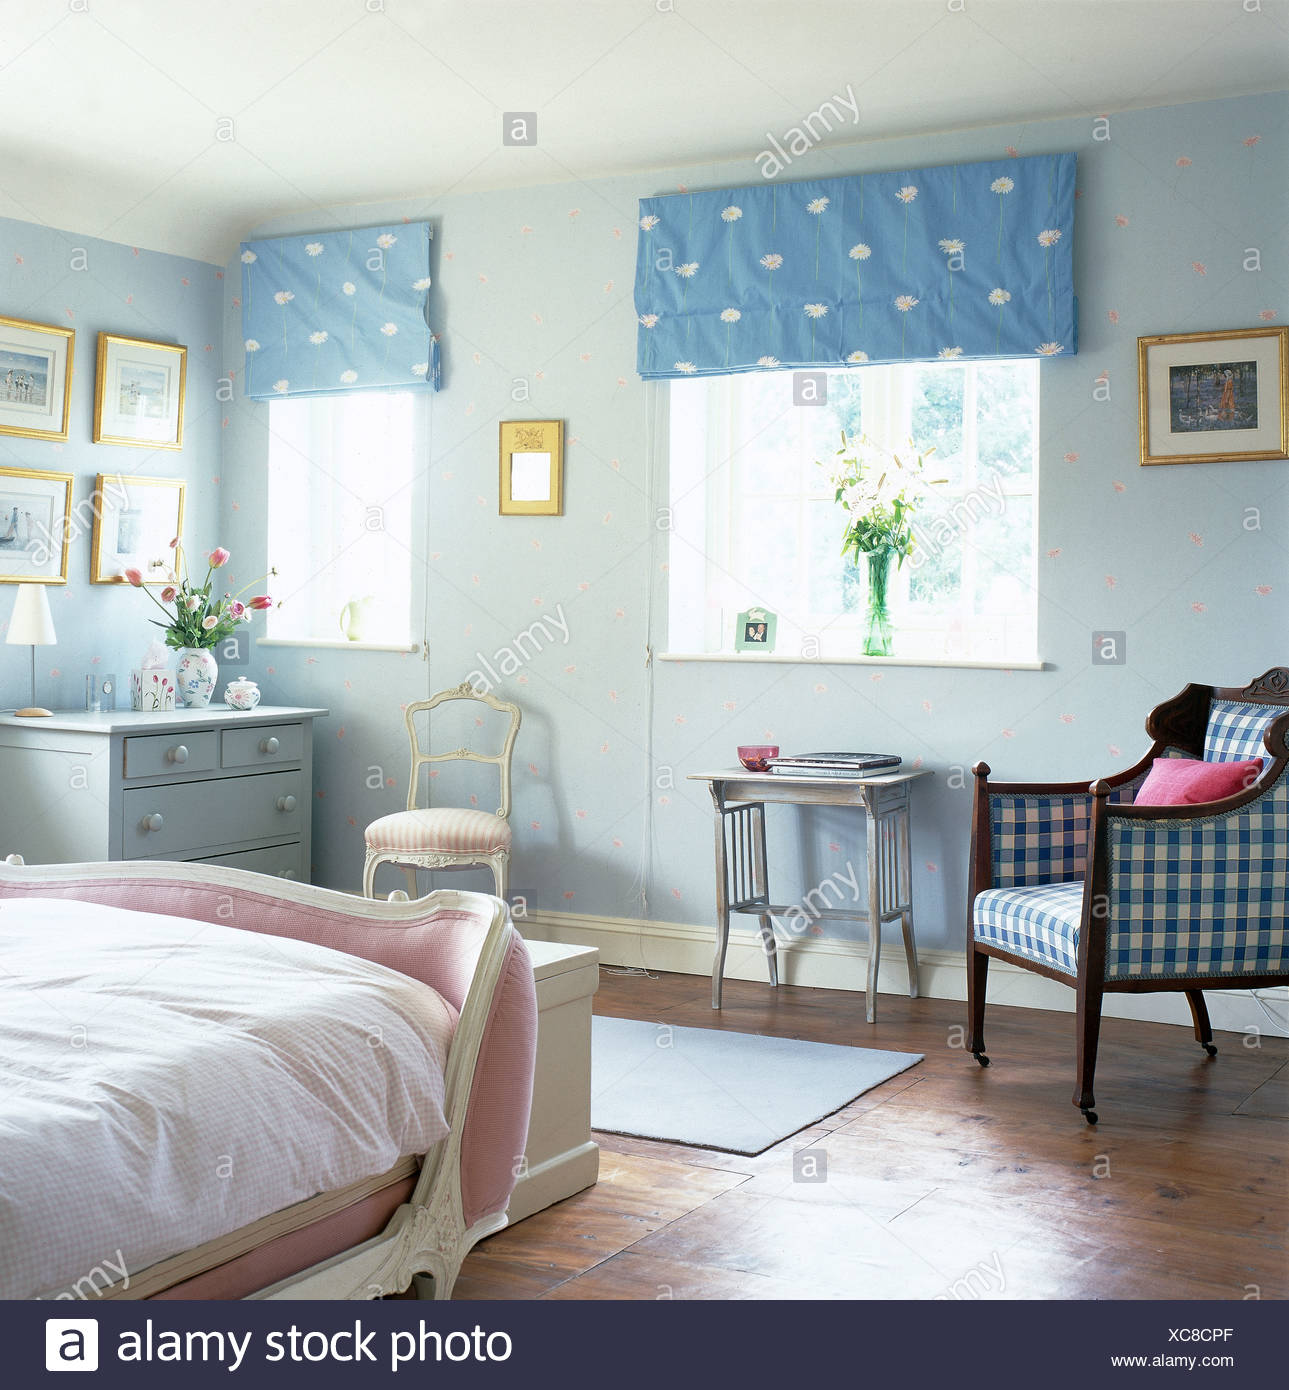 Blue Spotted Blinds On Windows In Pale Country Bedroom With Checked Armchair And Pink